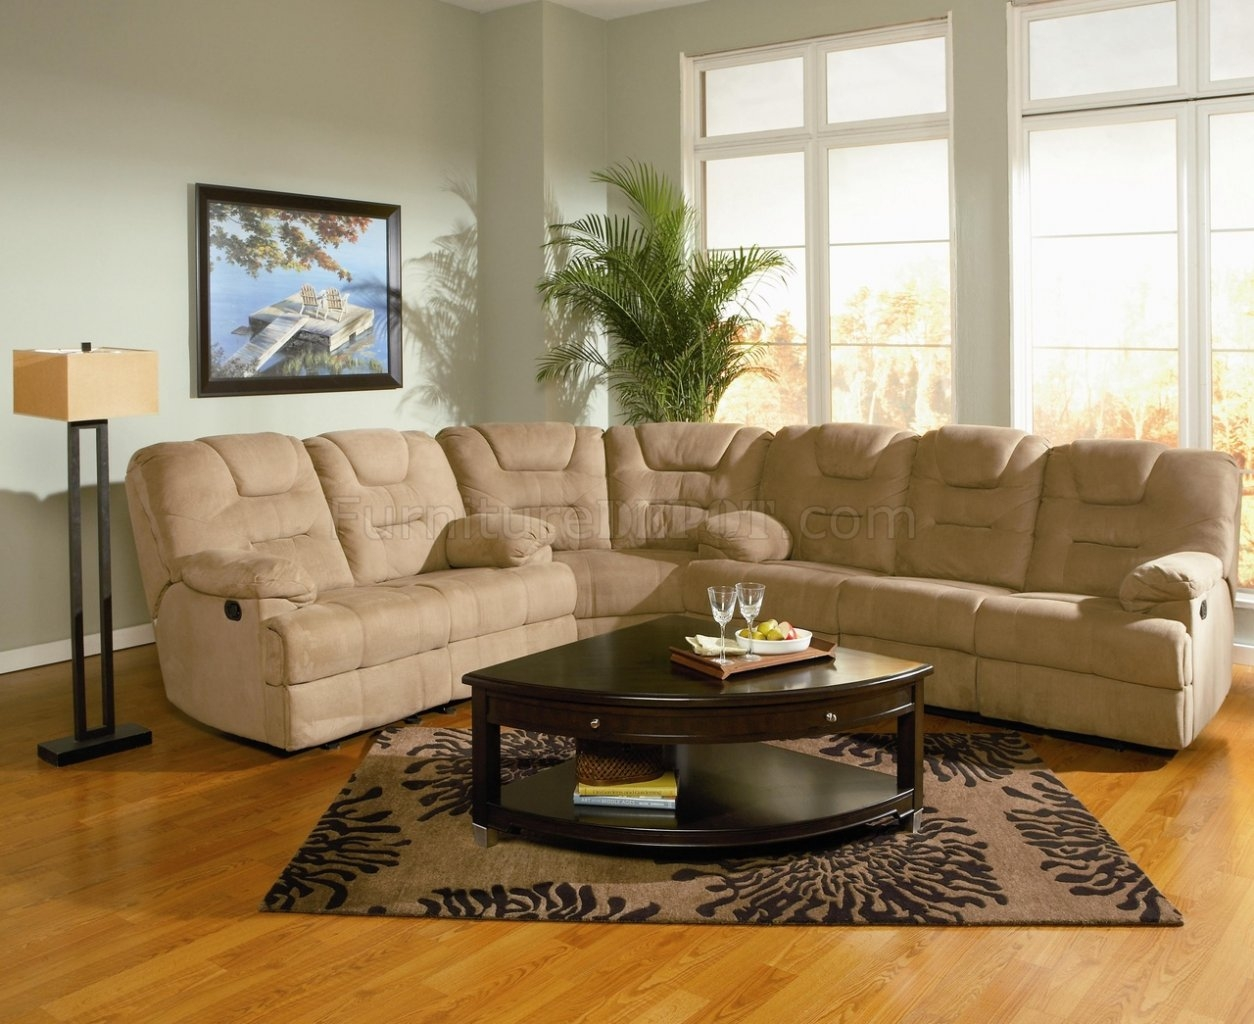 Modern Microfiber Reclining Sectional Sofa 600351 Mocha Inside Sofas With High Backs (Image 9 of 15)